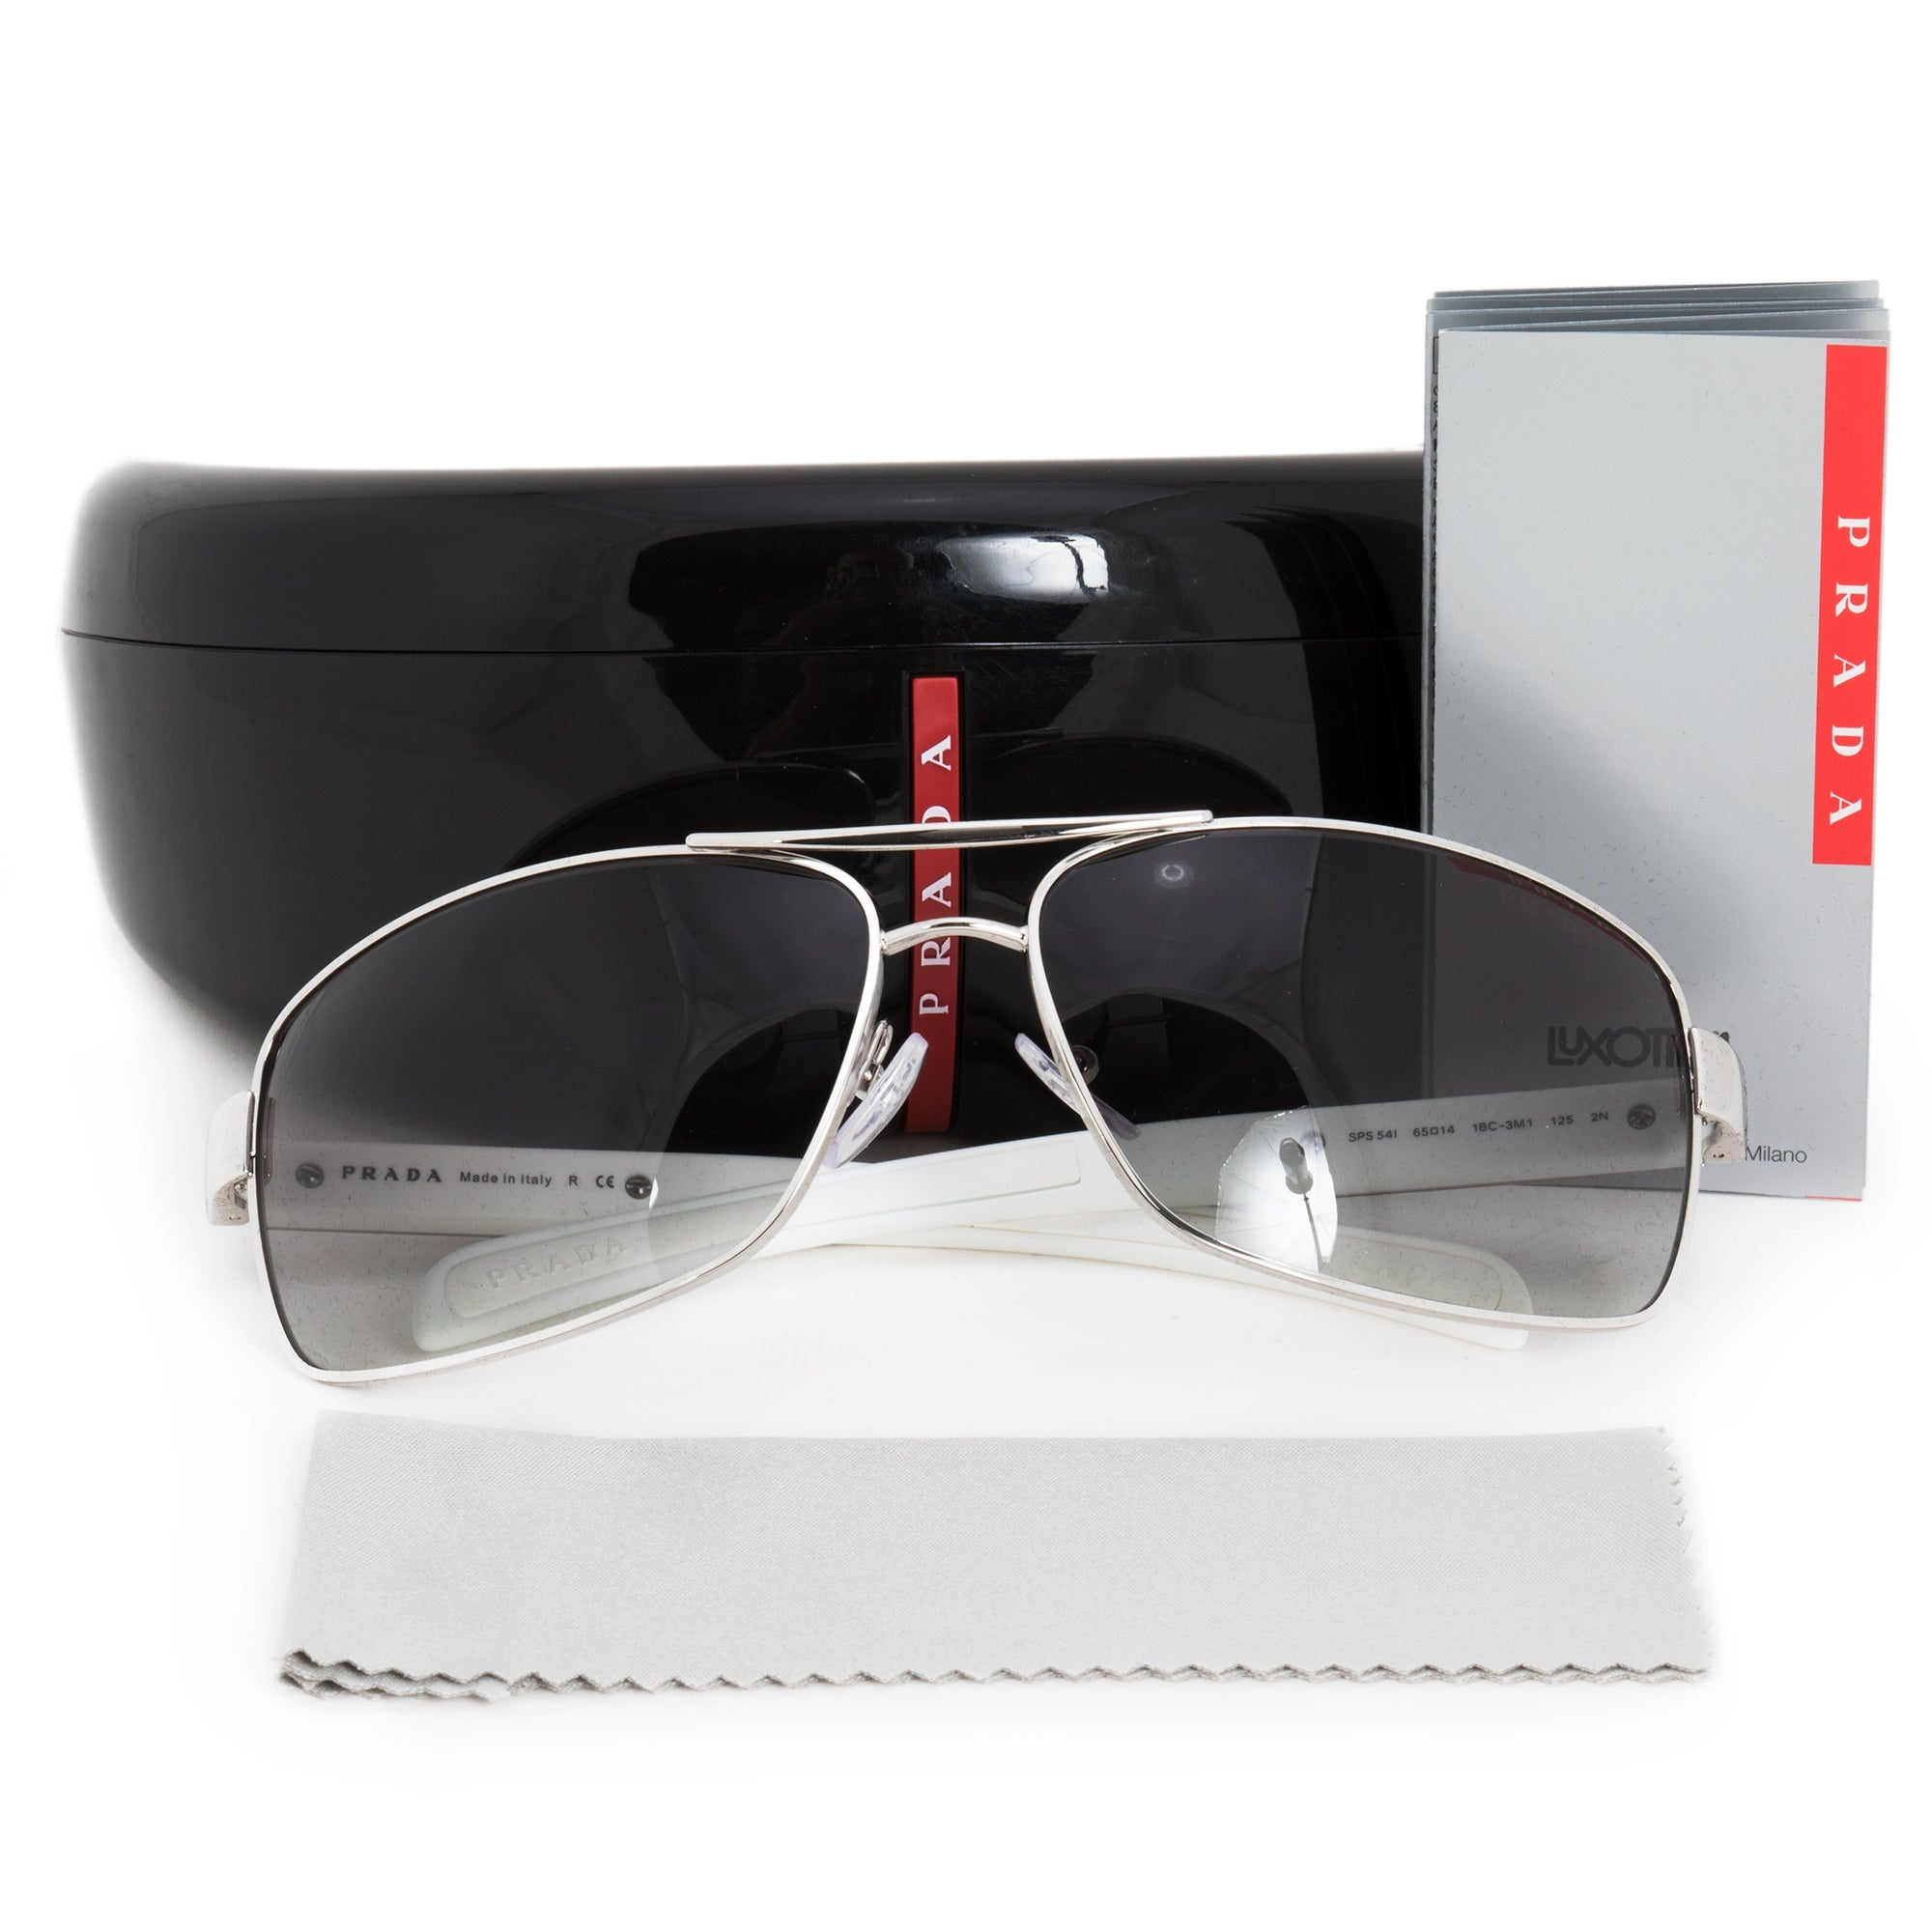 8198cfce official prada sunglasses 541 instructions 2f591 64087